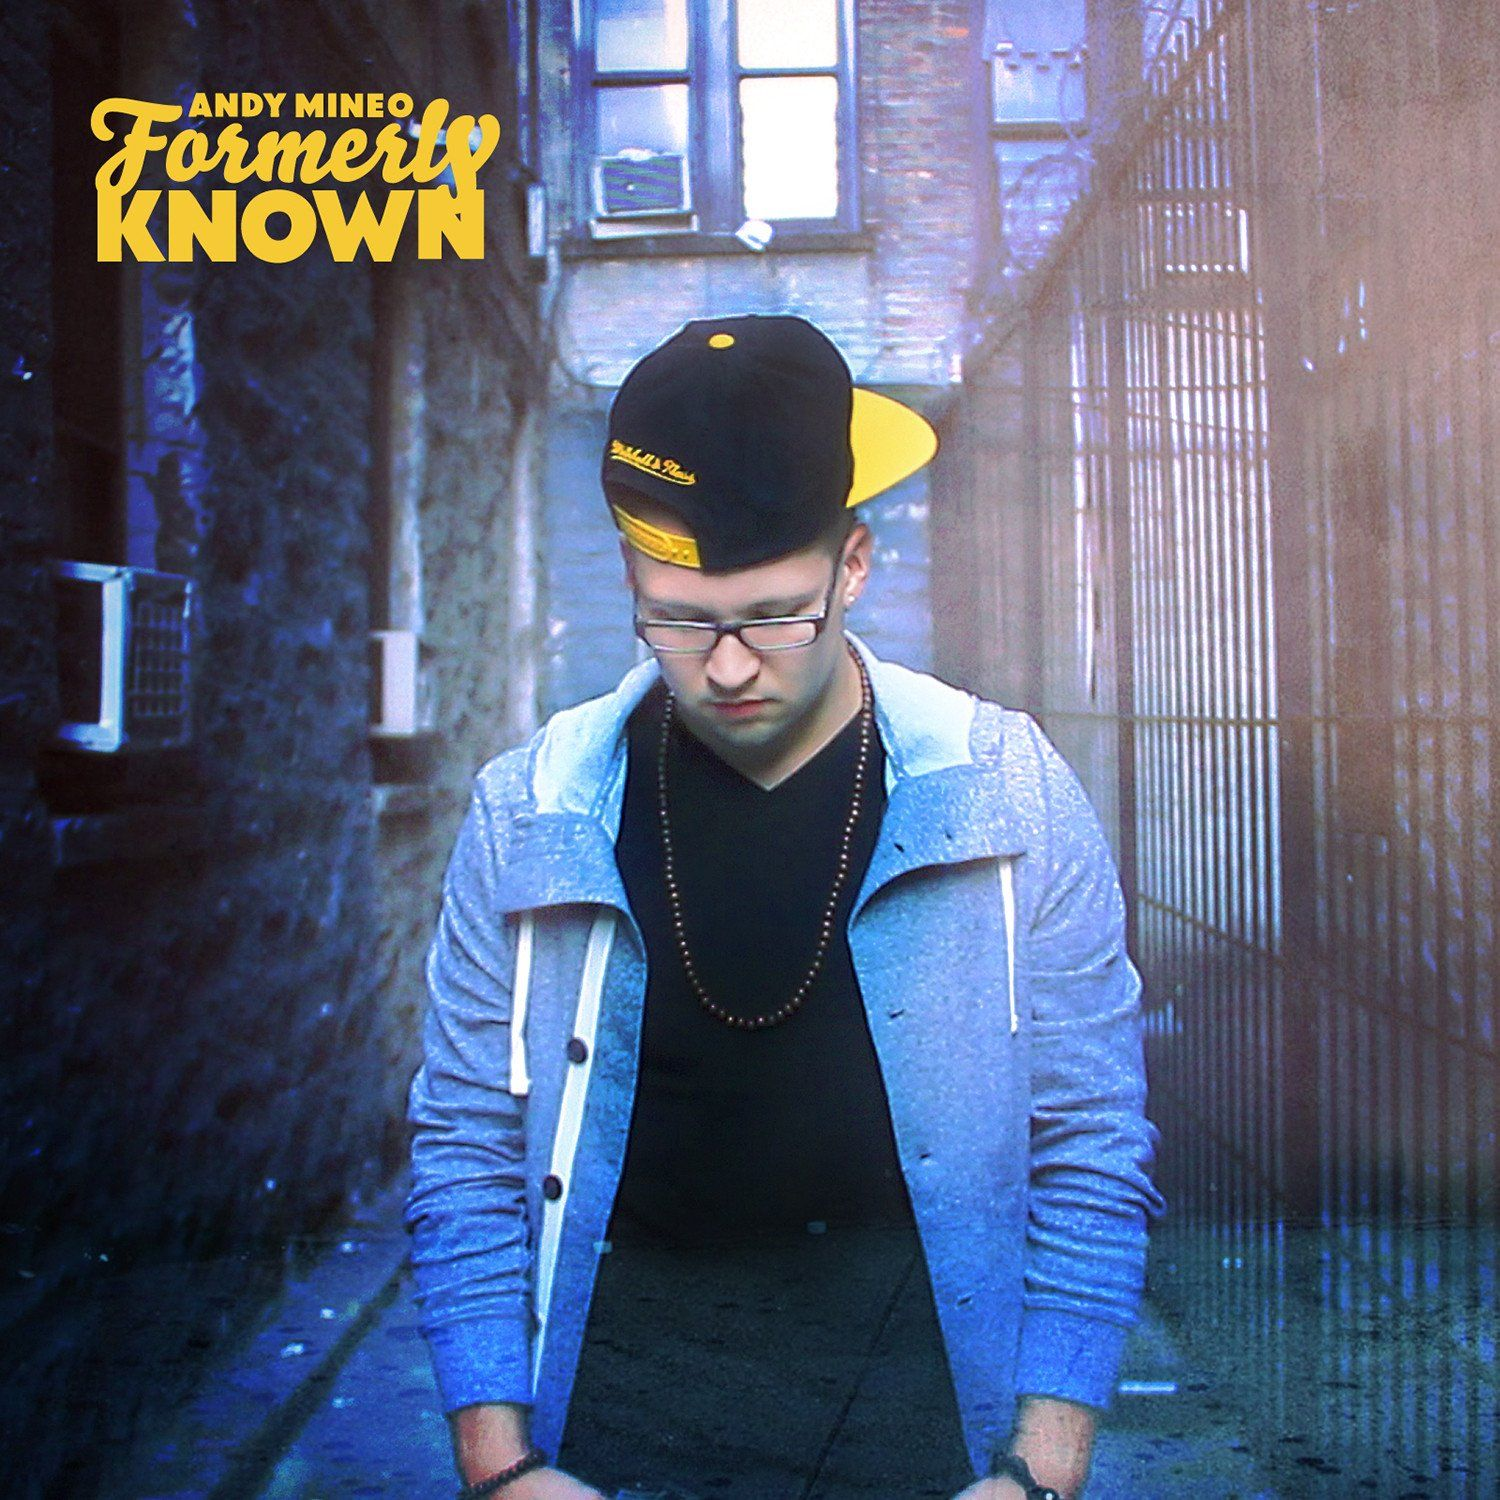 Reach Records Andy Mineo 'Formerly Known'